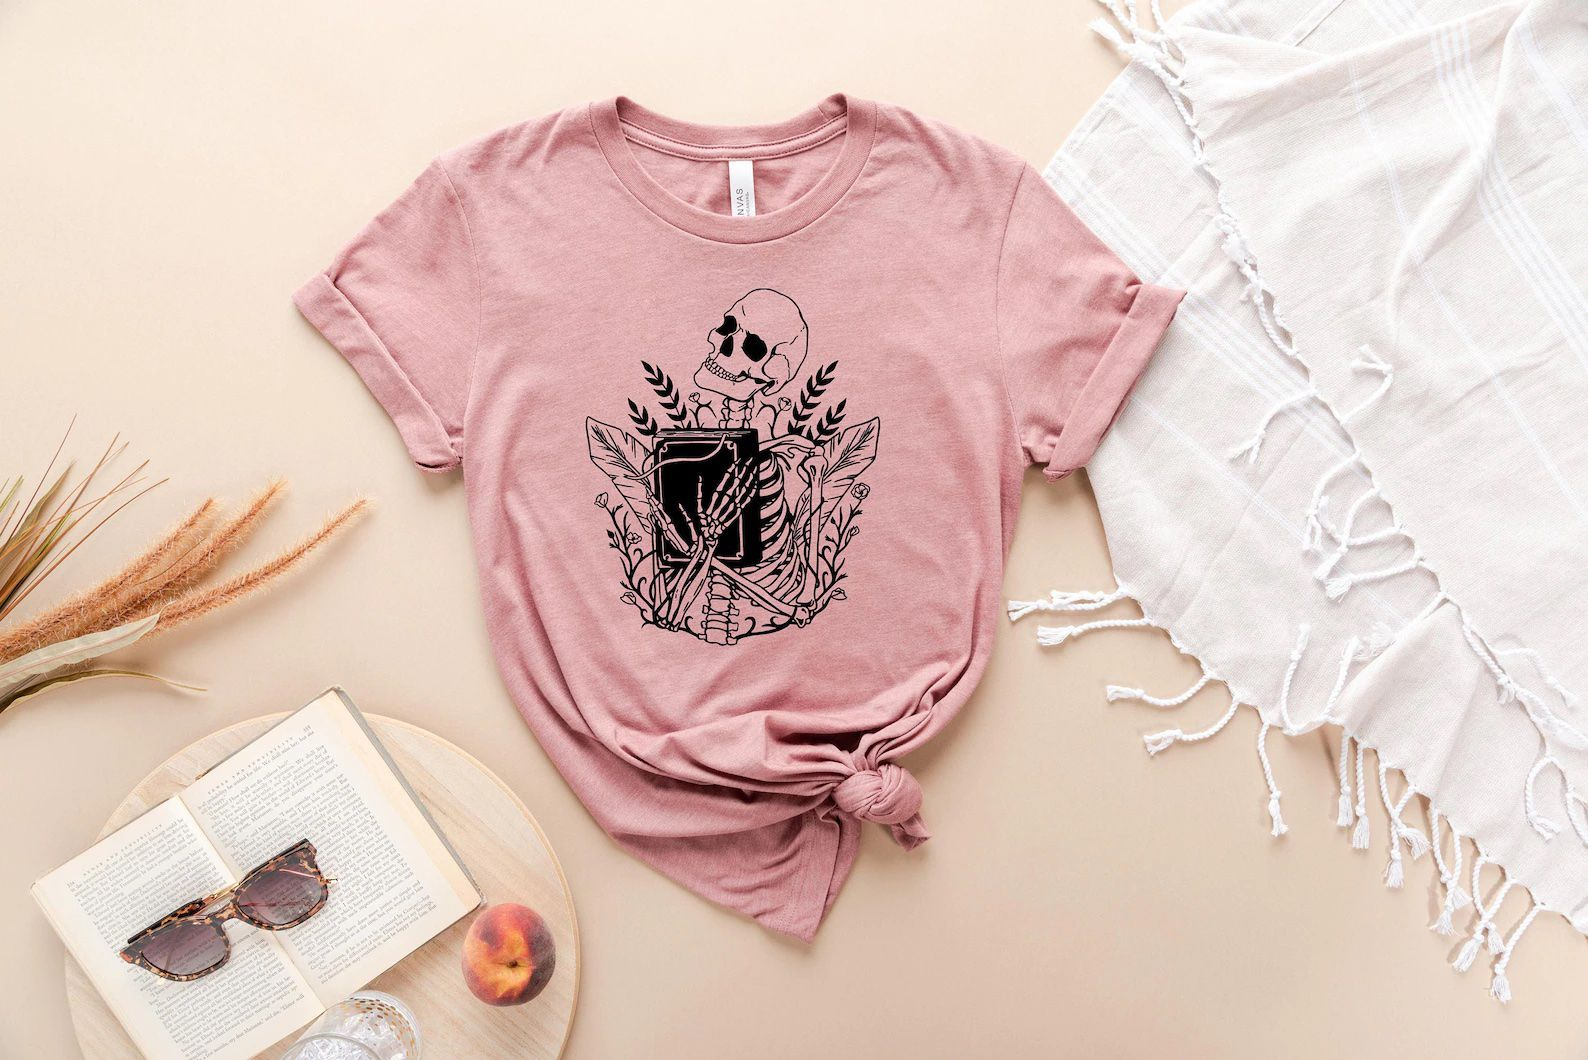 Pink t-shirt depicting a black line art drawing of a skeleton clutching a black book to its chest with a background of plants.